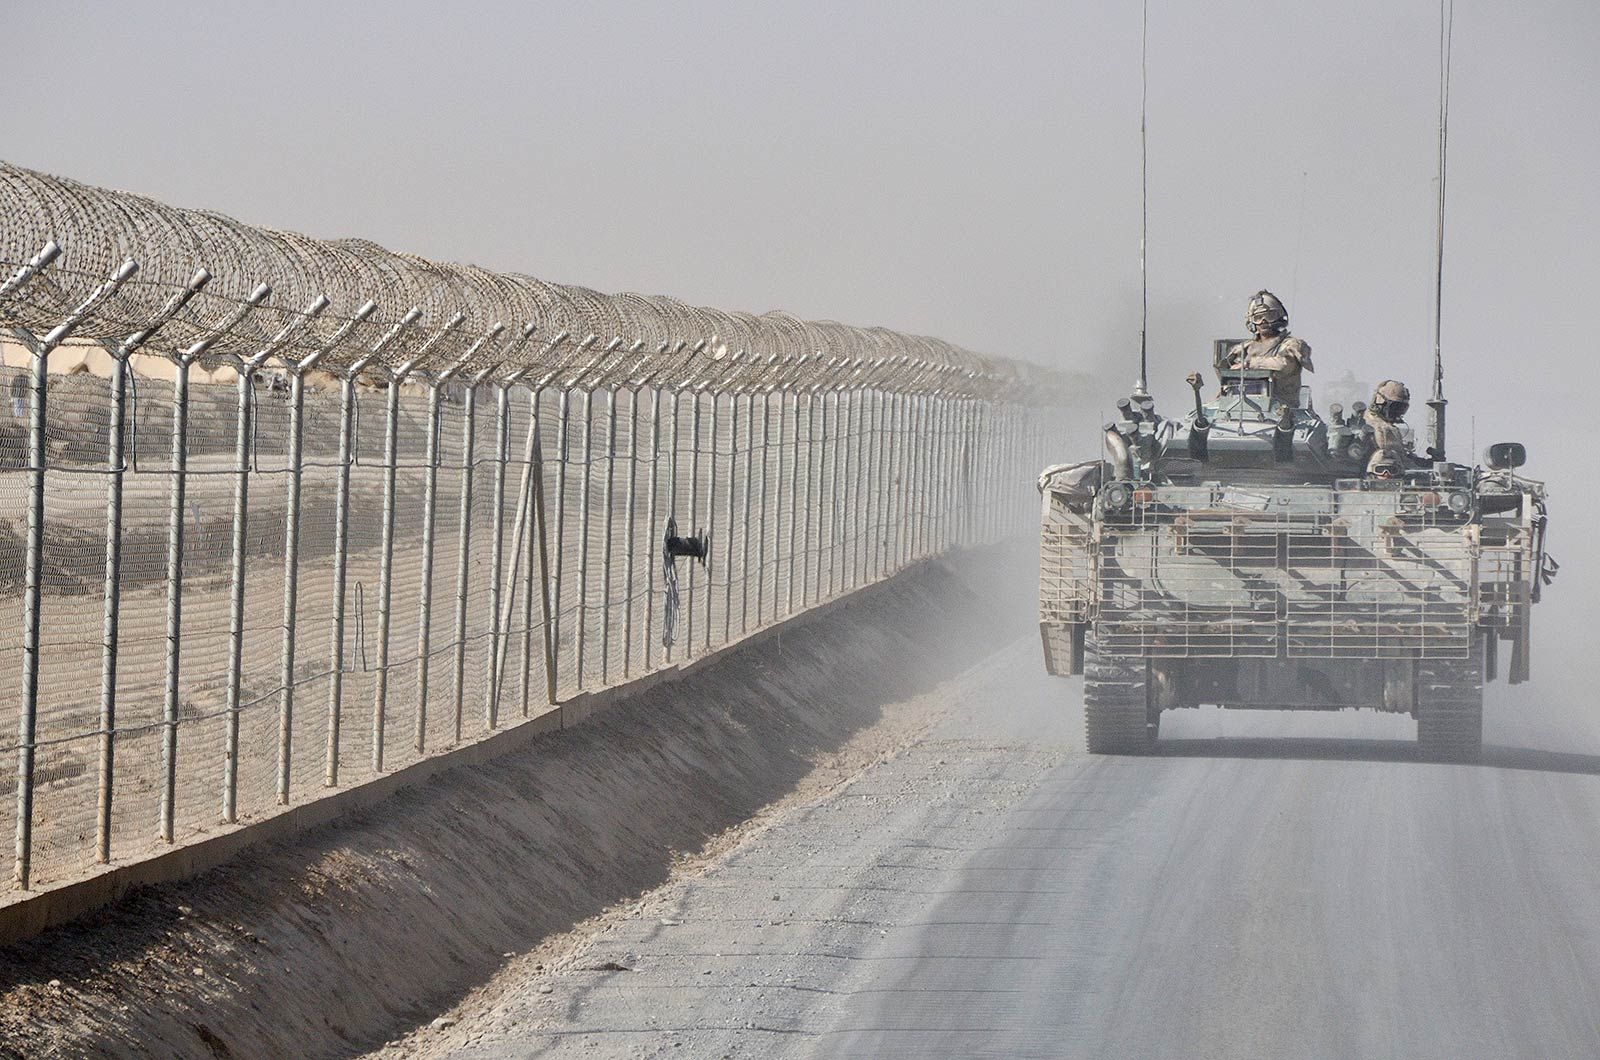 Photo: Tracked Light Armoured Vehicle (TLAV), Kandahar, Afghanistan